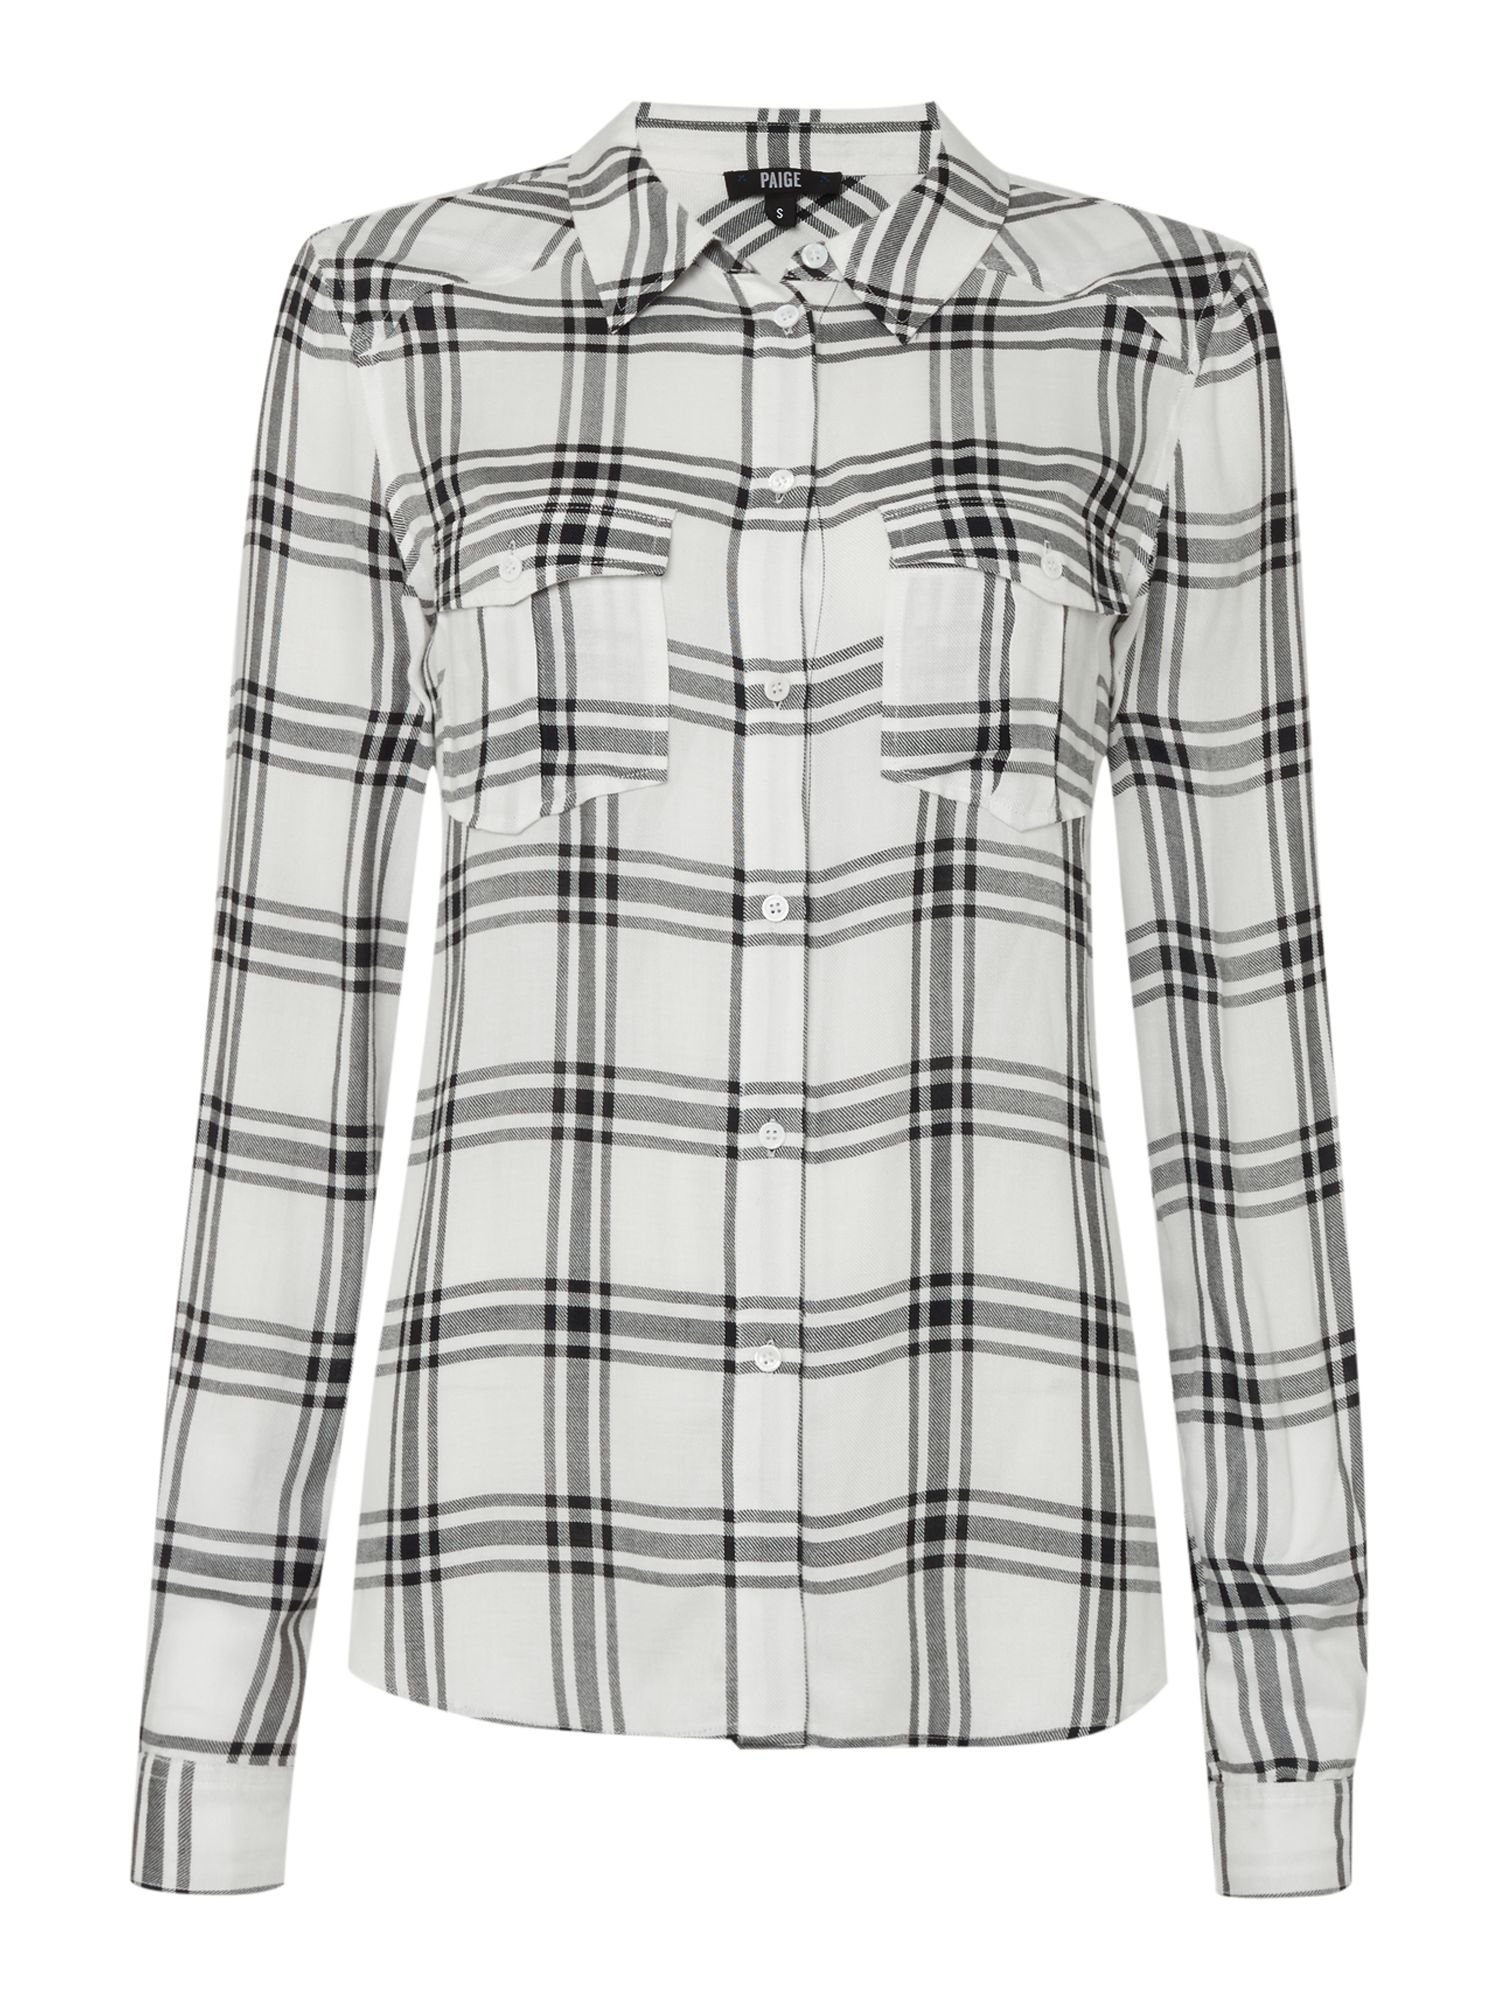 Mya Checked Shirt, Black/white